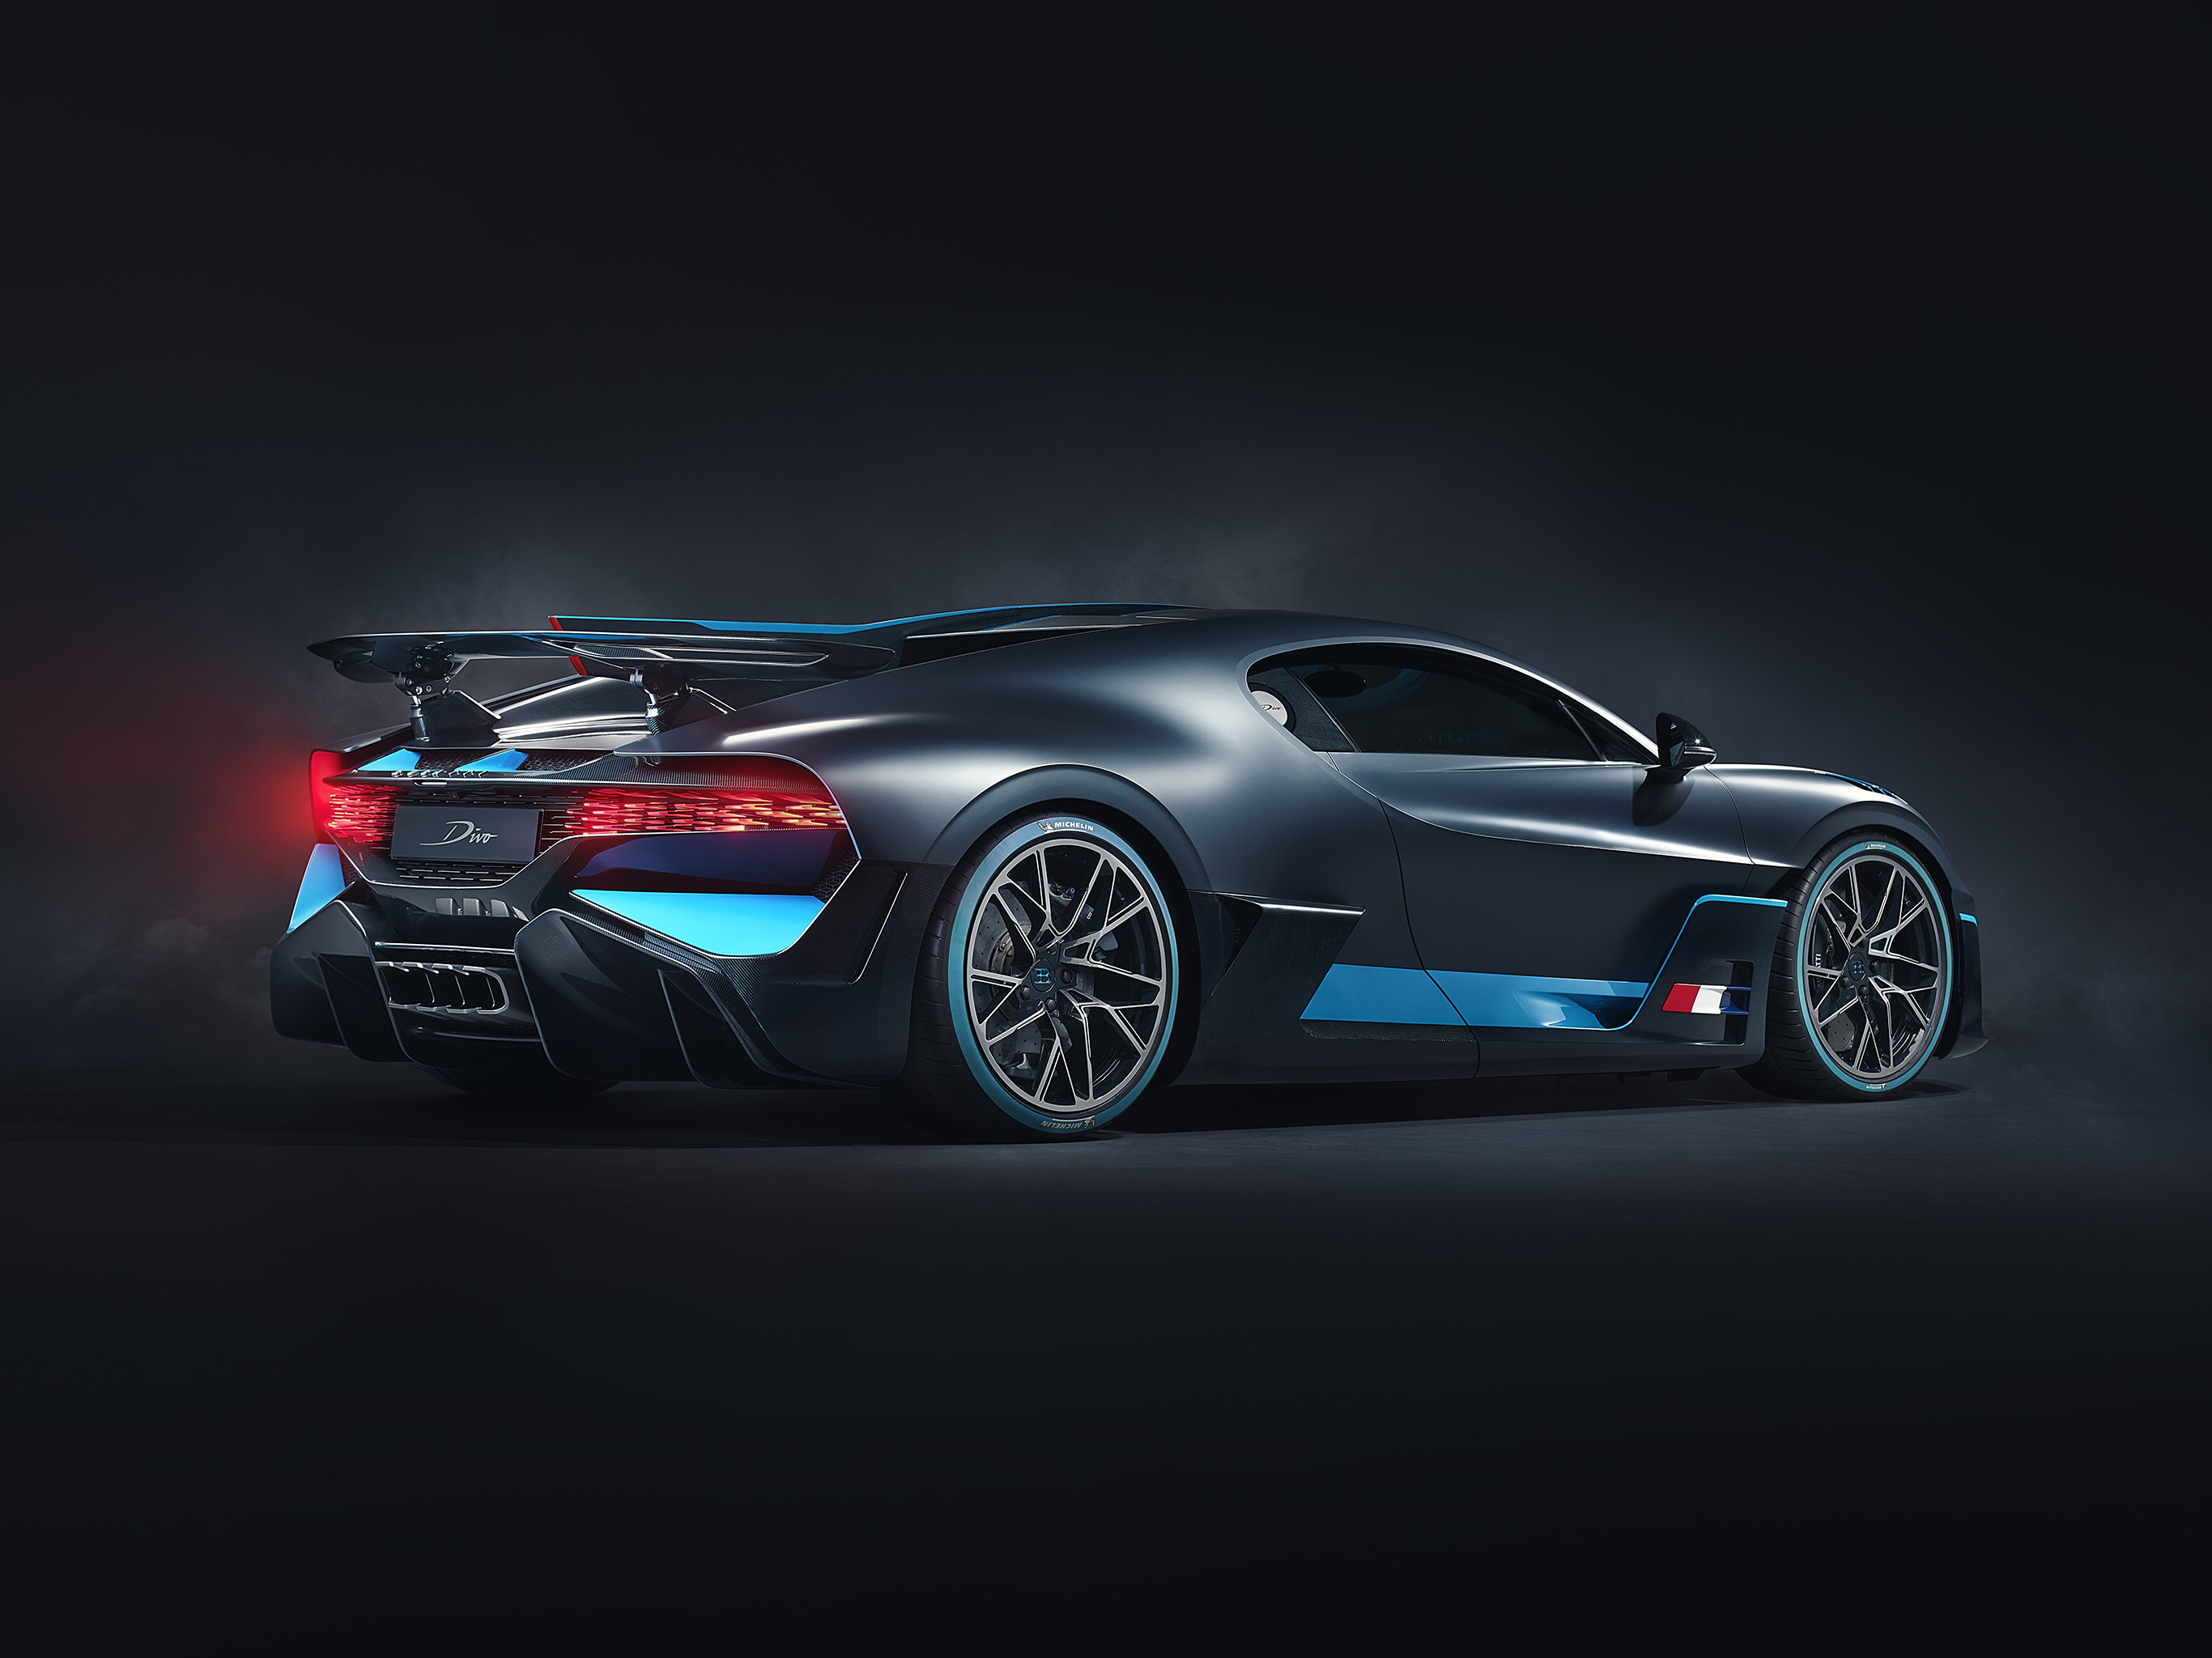 1920x1080 2018 Bugatti Divo Rear View Photoshoot Laptop Full Hd 1080p Hd 4k Wallpapers Images Backgrounds Photos And Pictures